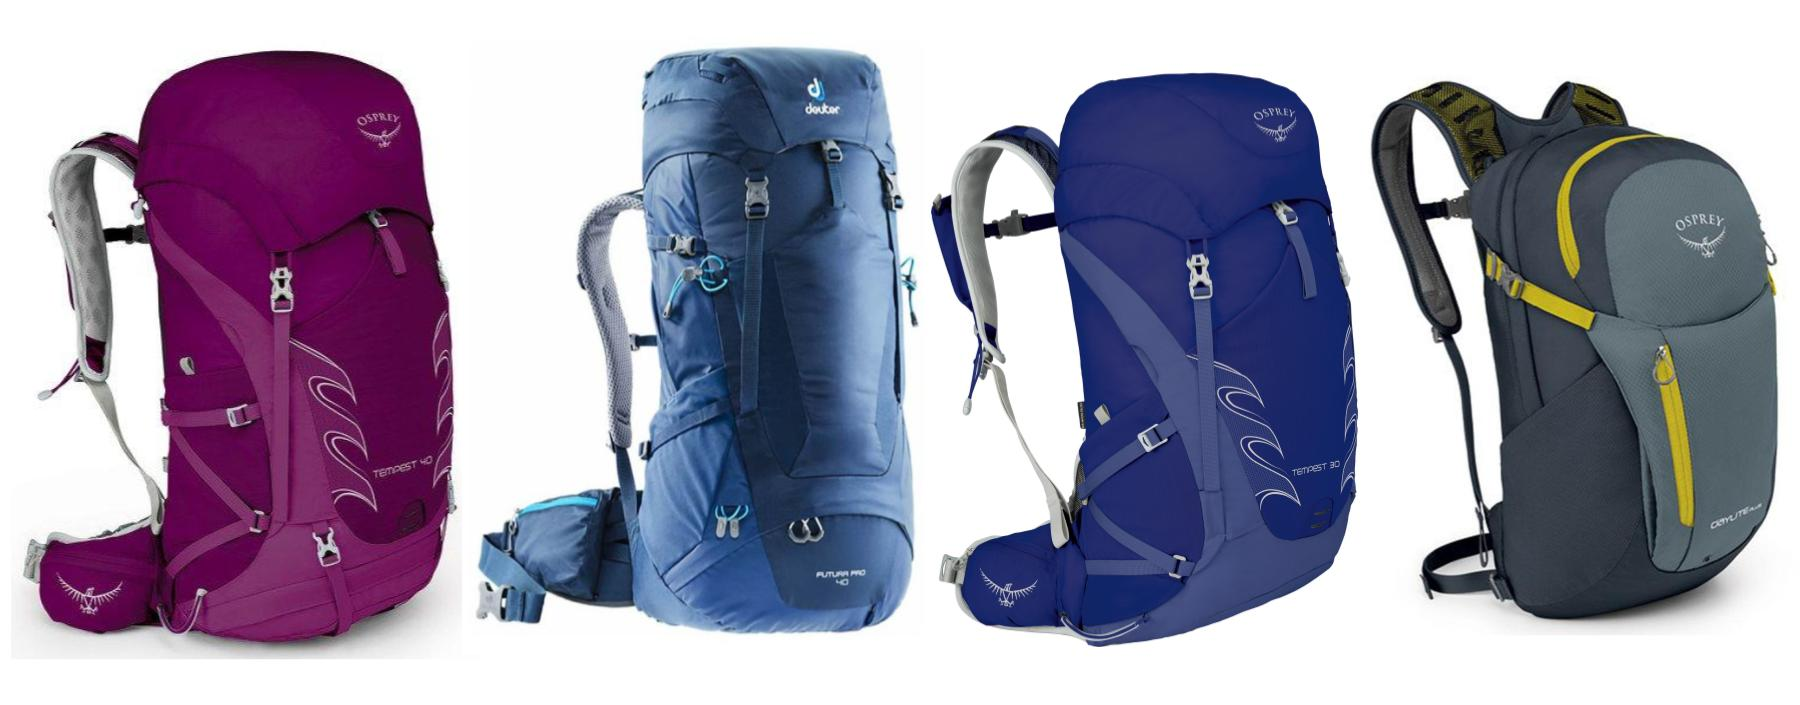 Four backpacks for women to walk the Camino de Santiago. Two 40L backpacks, one 30L pack and one 13L daypack